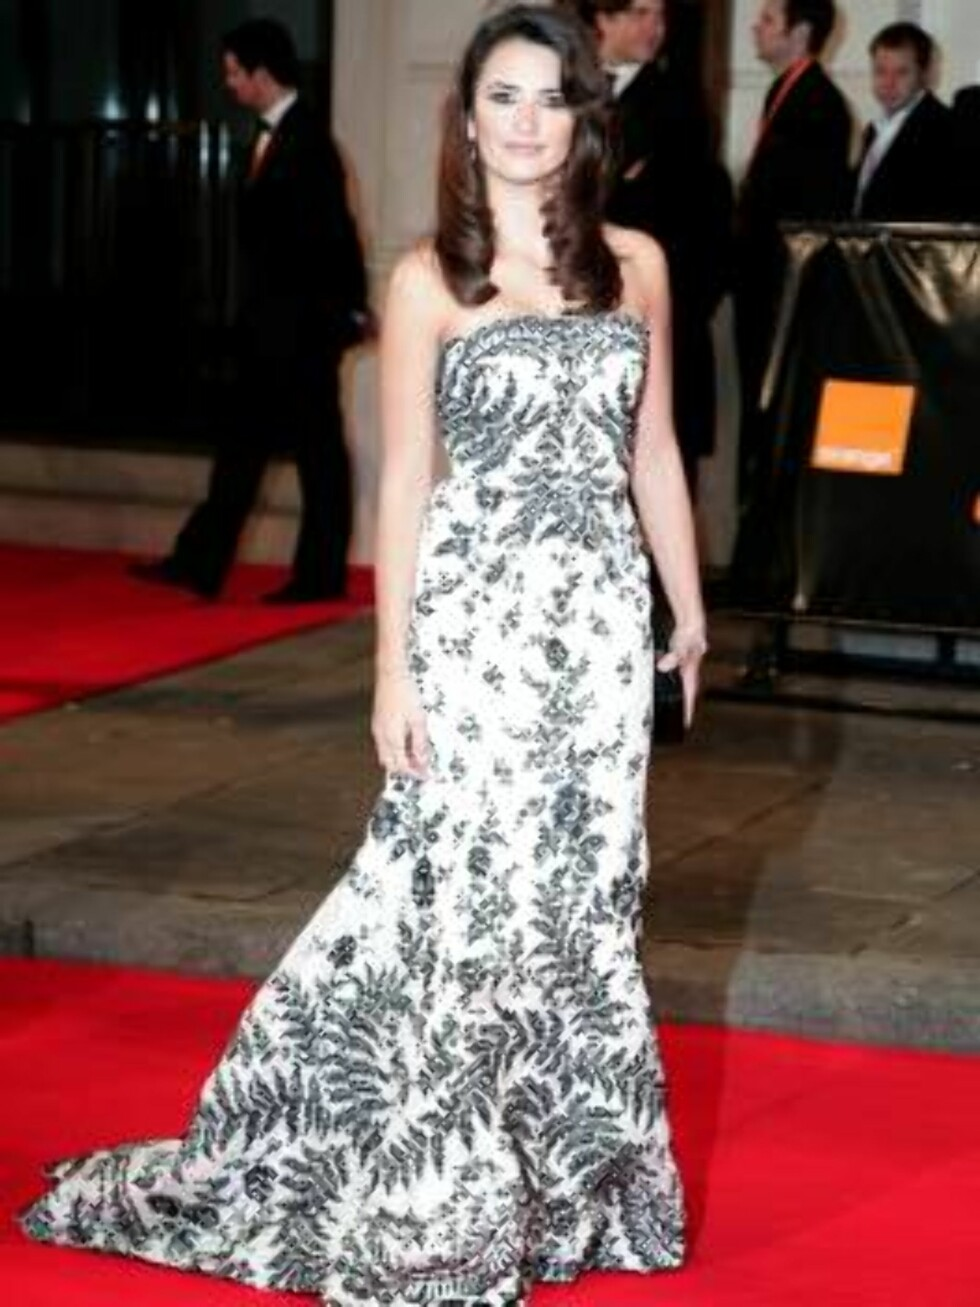 London 2007-02-11  Penelope Cruz arriving  at the Orange British Academy Film Awards held at the Royal Opera House in London. Photo:  Axel  Code: 3008  COPYRIGHT STELLA PICTURES Foto: Stella Pictures